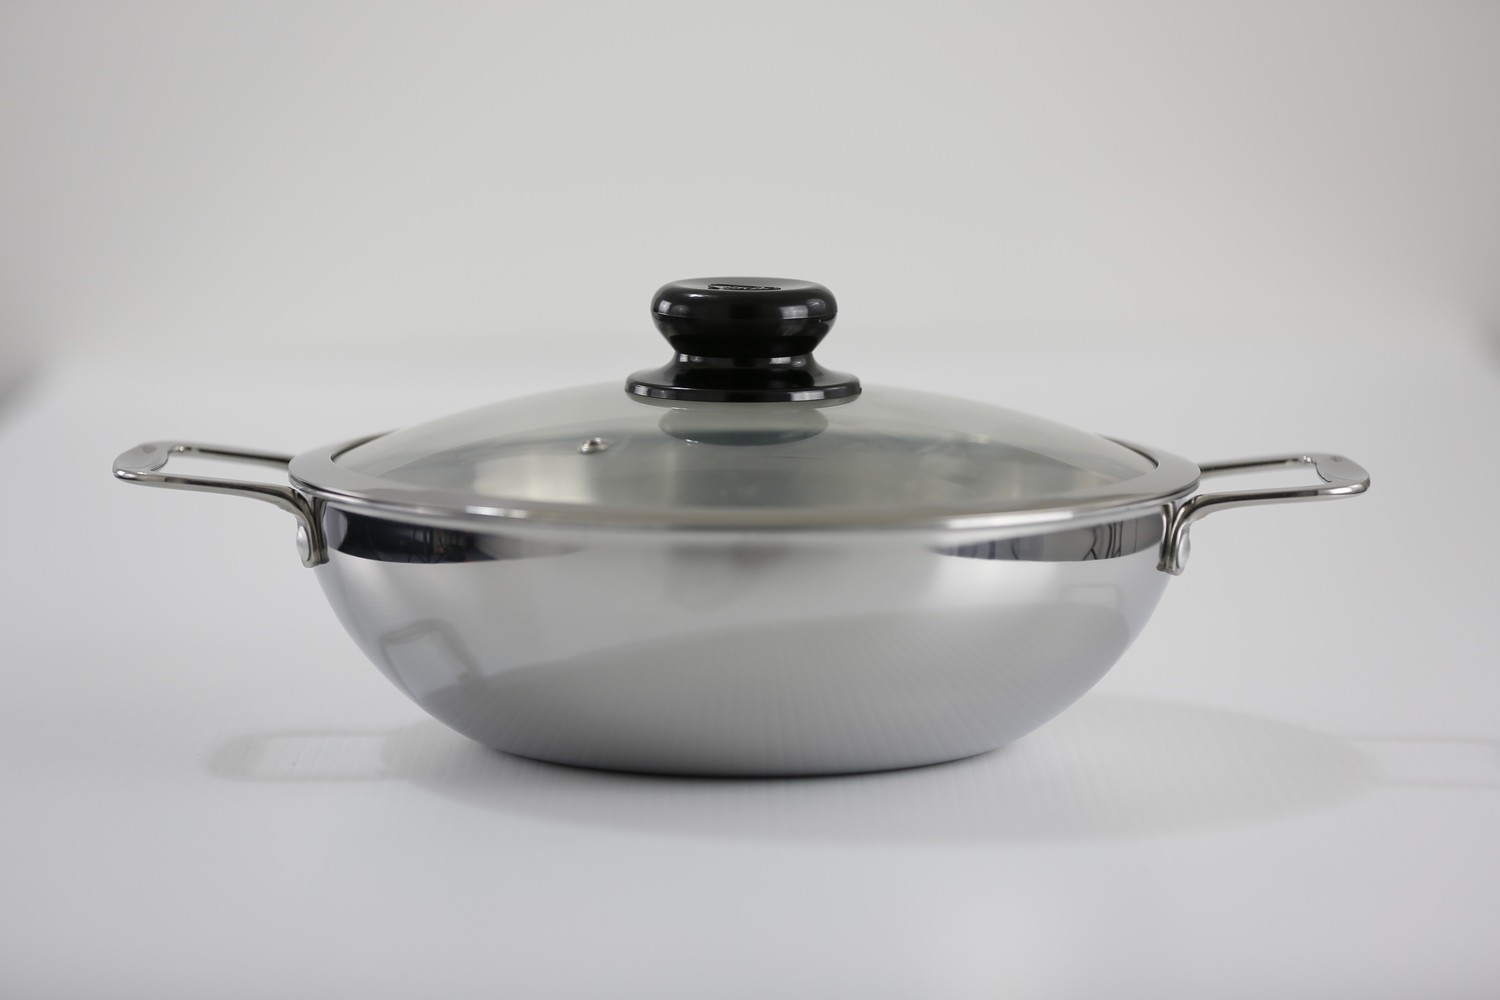 SS1 7.19 Qt. Stainless Steel Tri-Ply Covered Wok